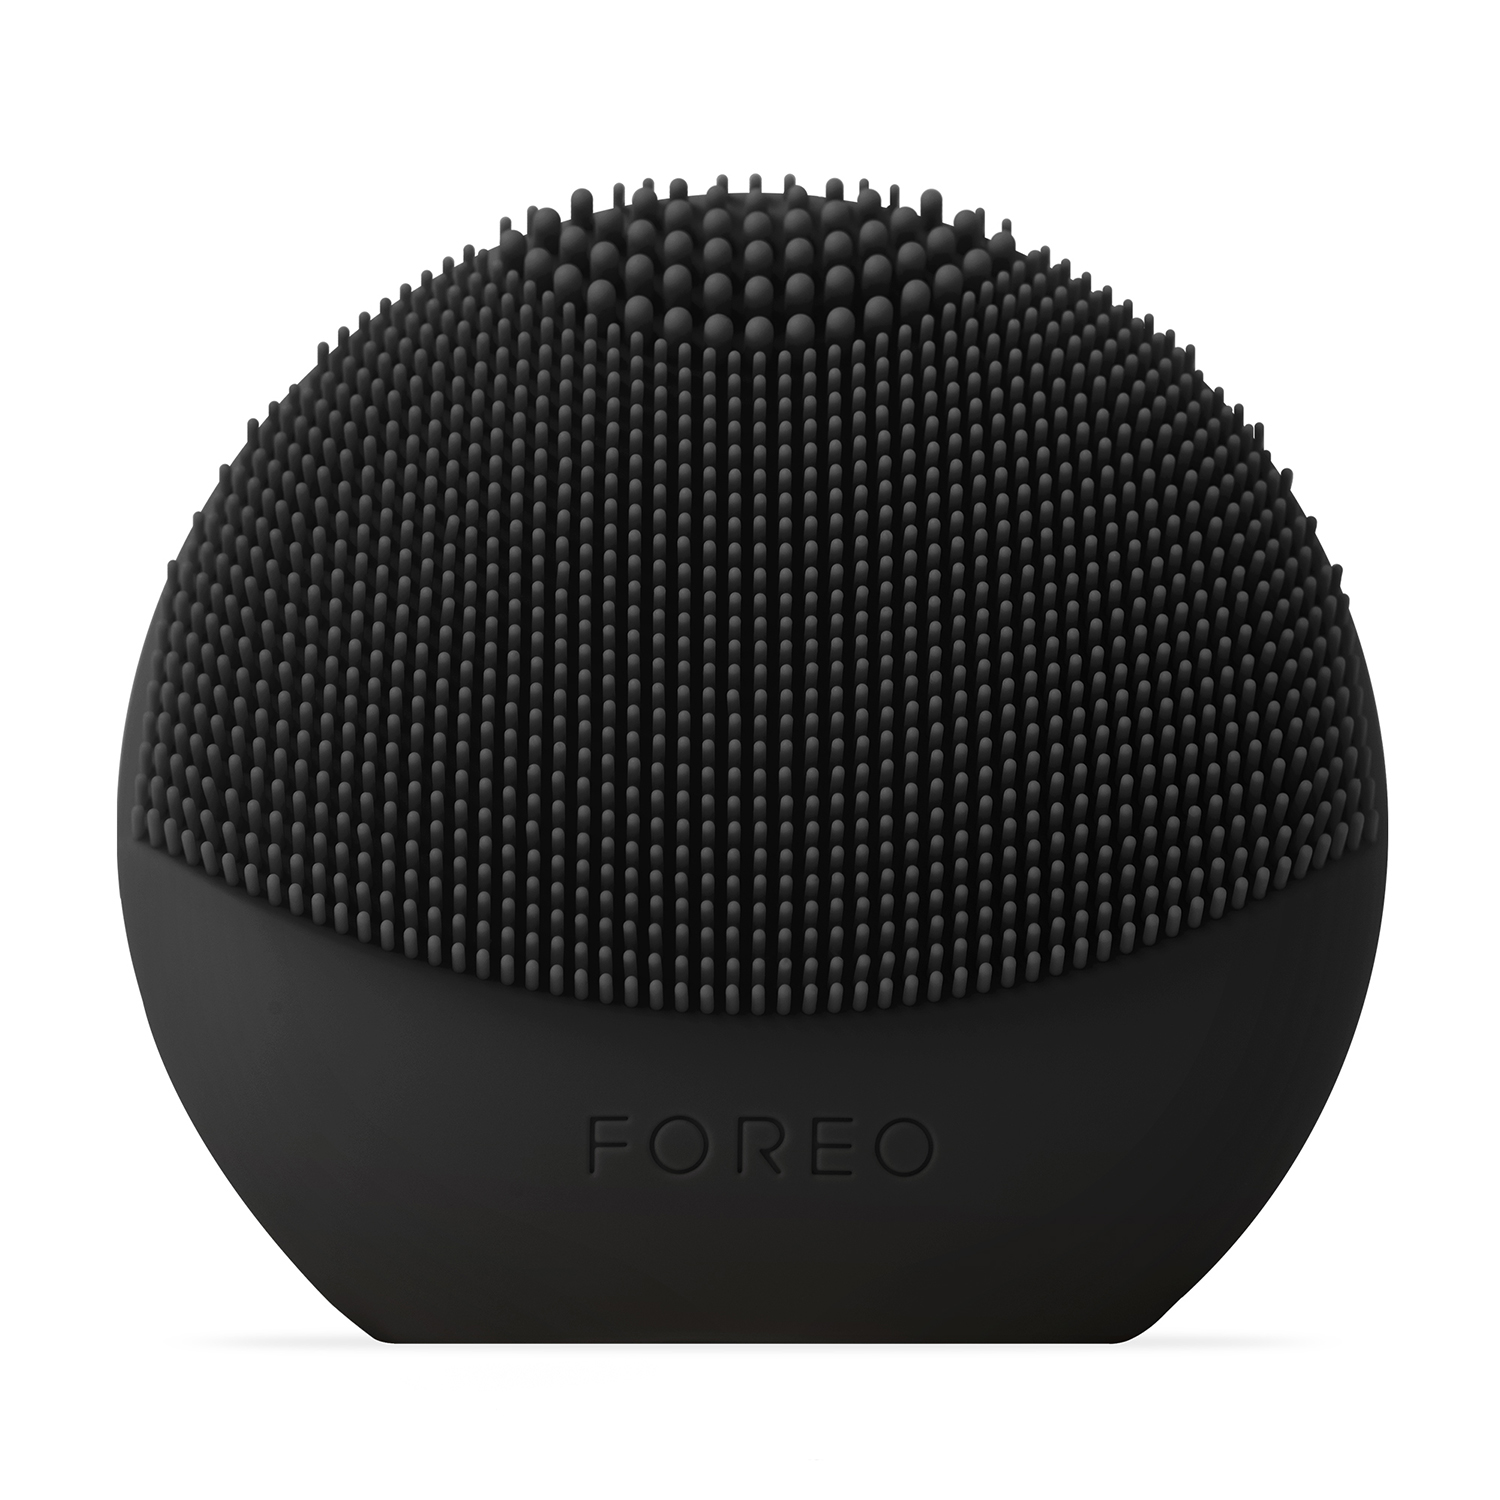 Luna Fofo Smart Facial Cleansing Brush Midnight